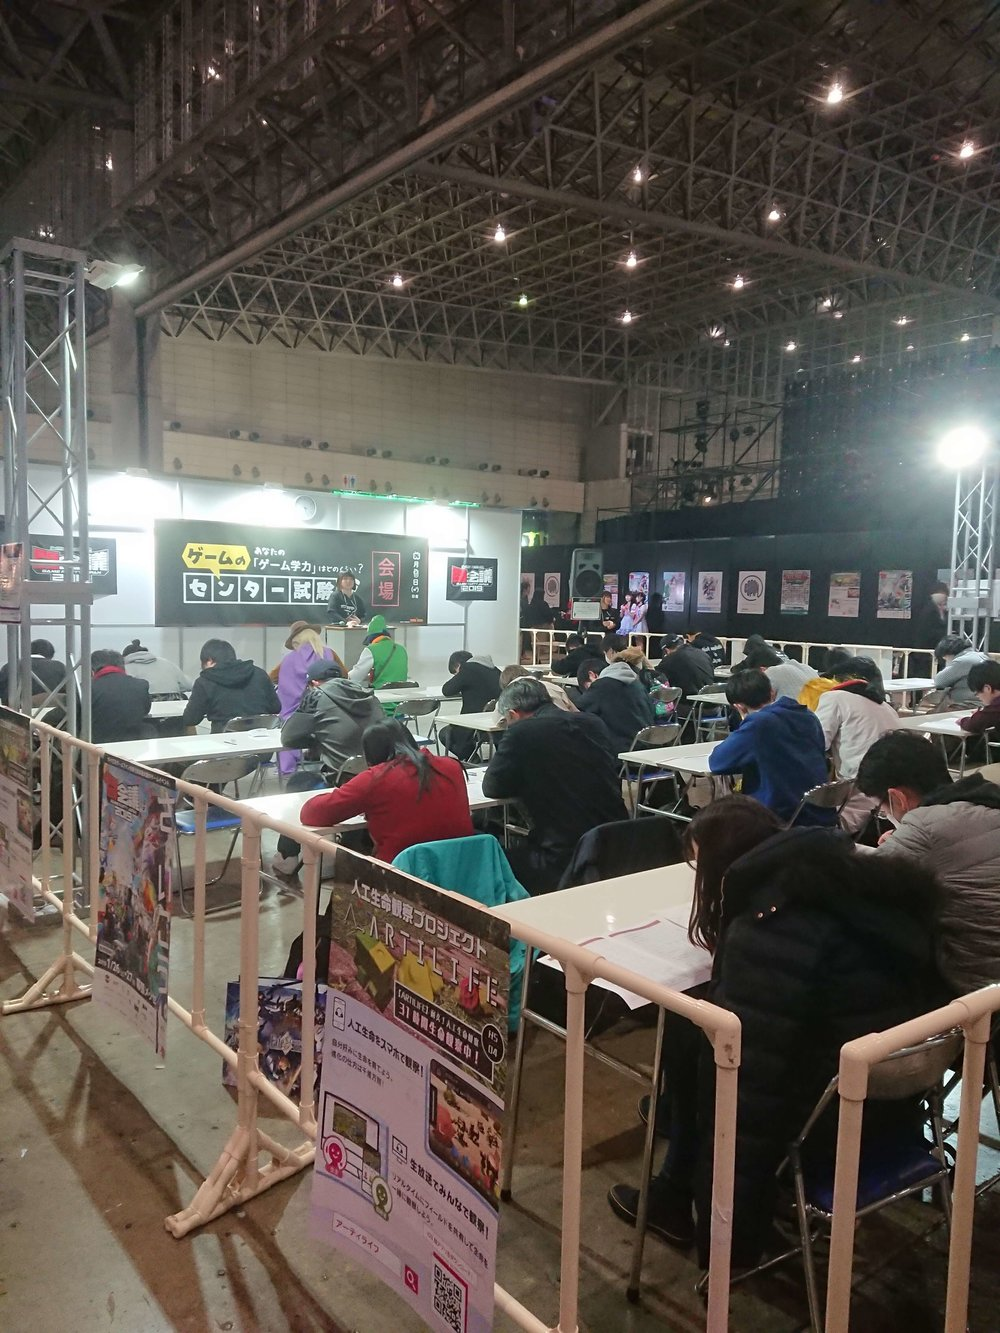 Test Taking Attraction at Tokaigi 2019